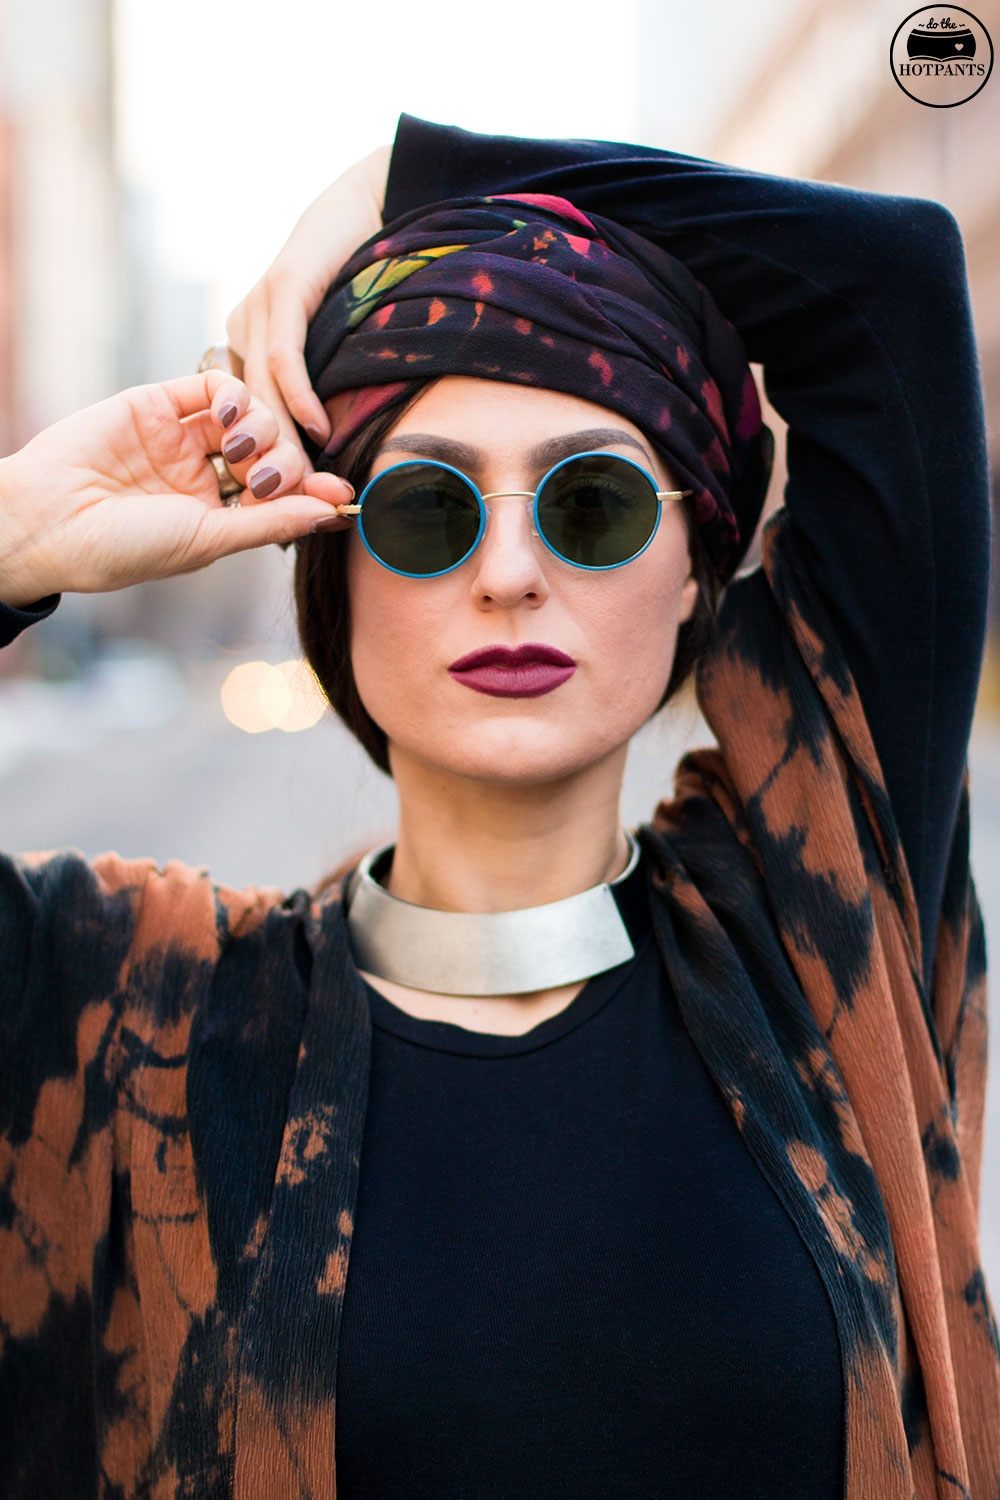 Do The Hotpants Dana Suchow Winter Fashion New York Streetstyle 2016 Tie Dye Hippy Outfit Turban Hijab IMG_6984